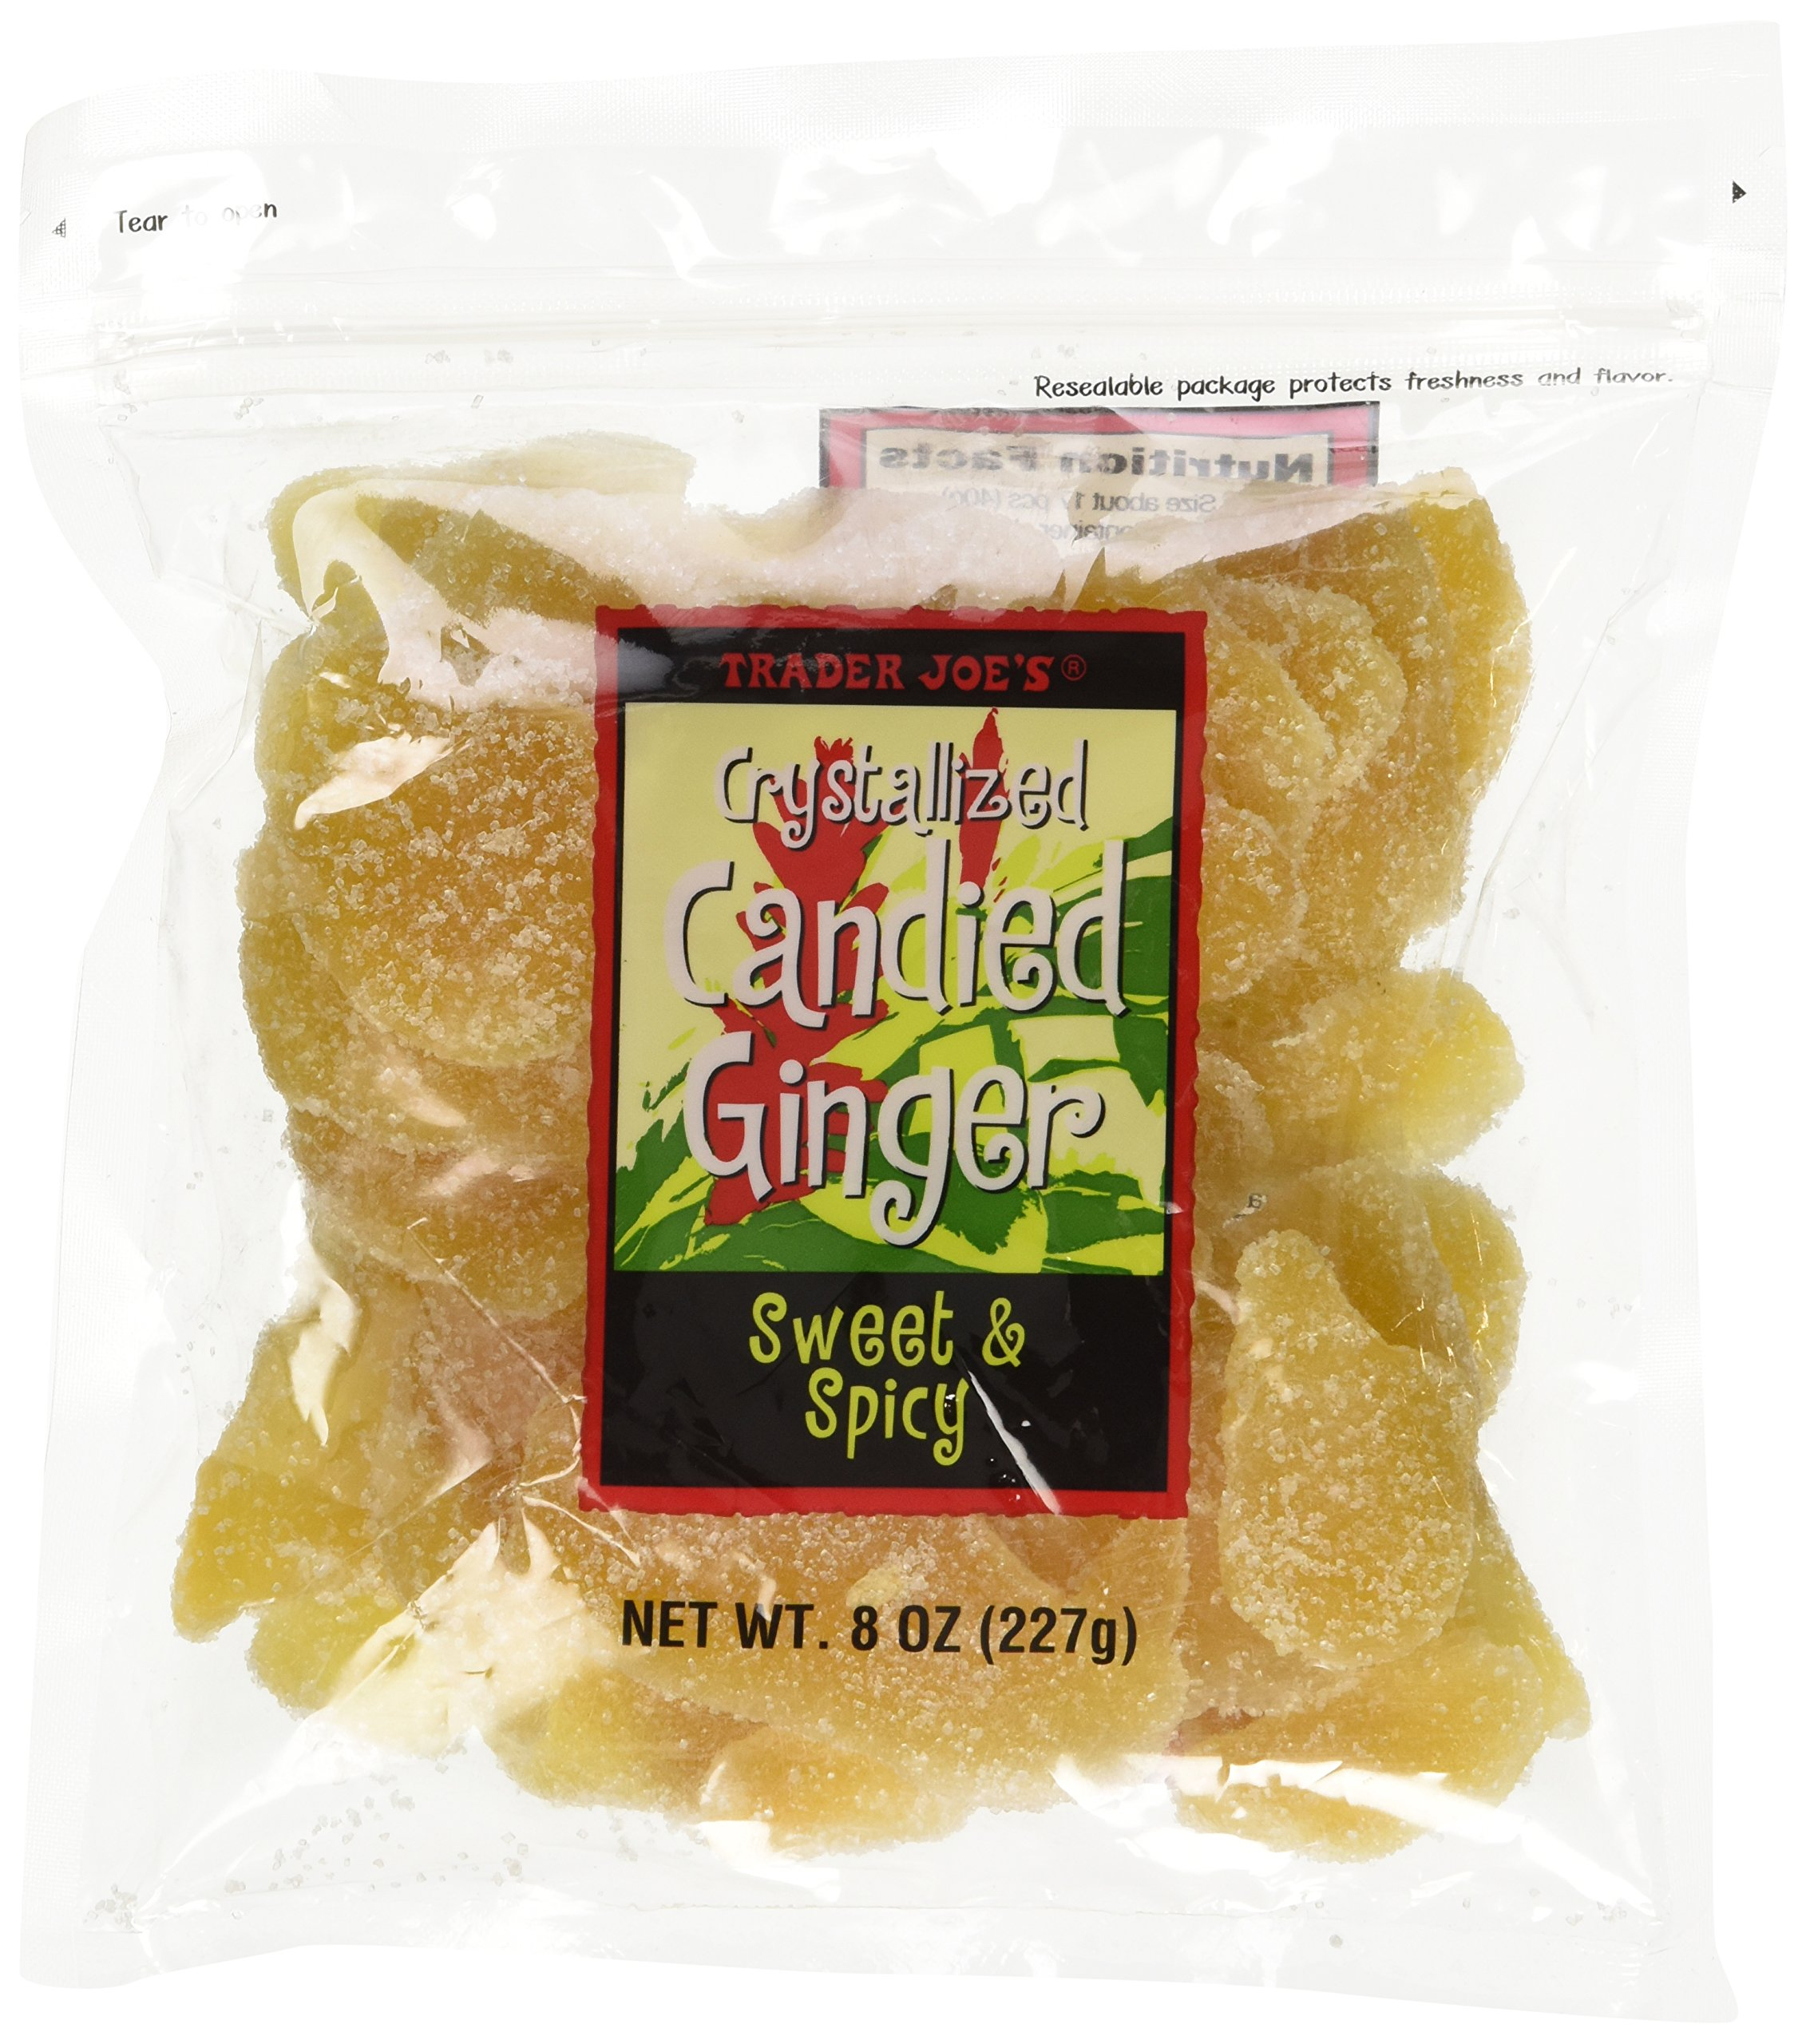 Trader Joe's Crystallized Candied Ginger (8 Oz.)